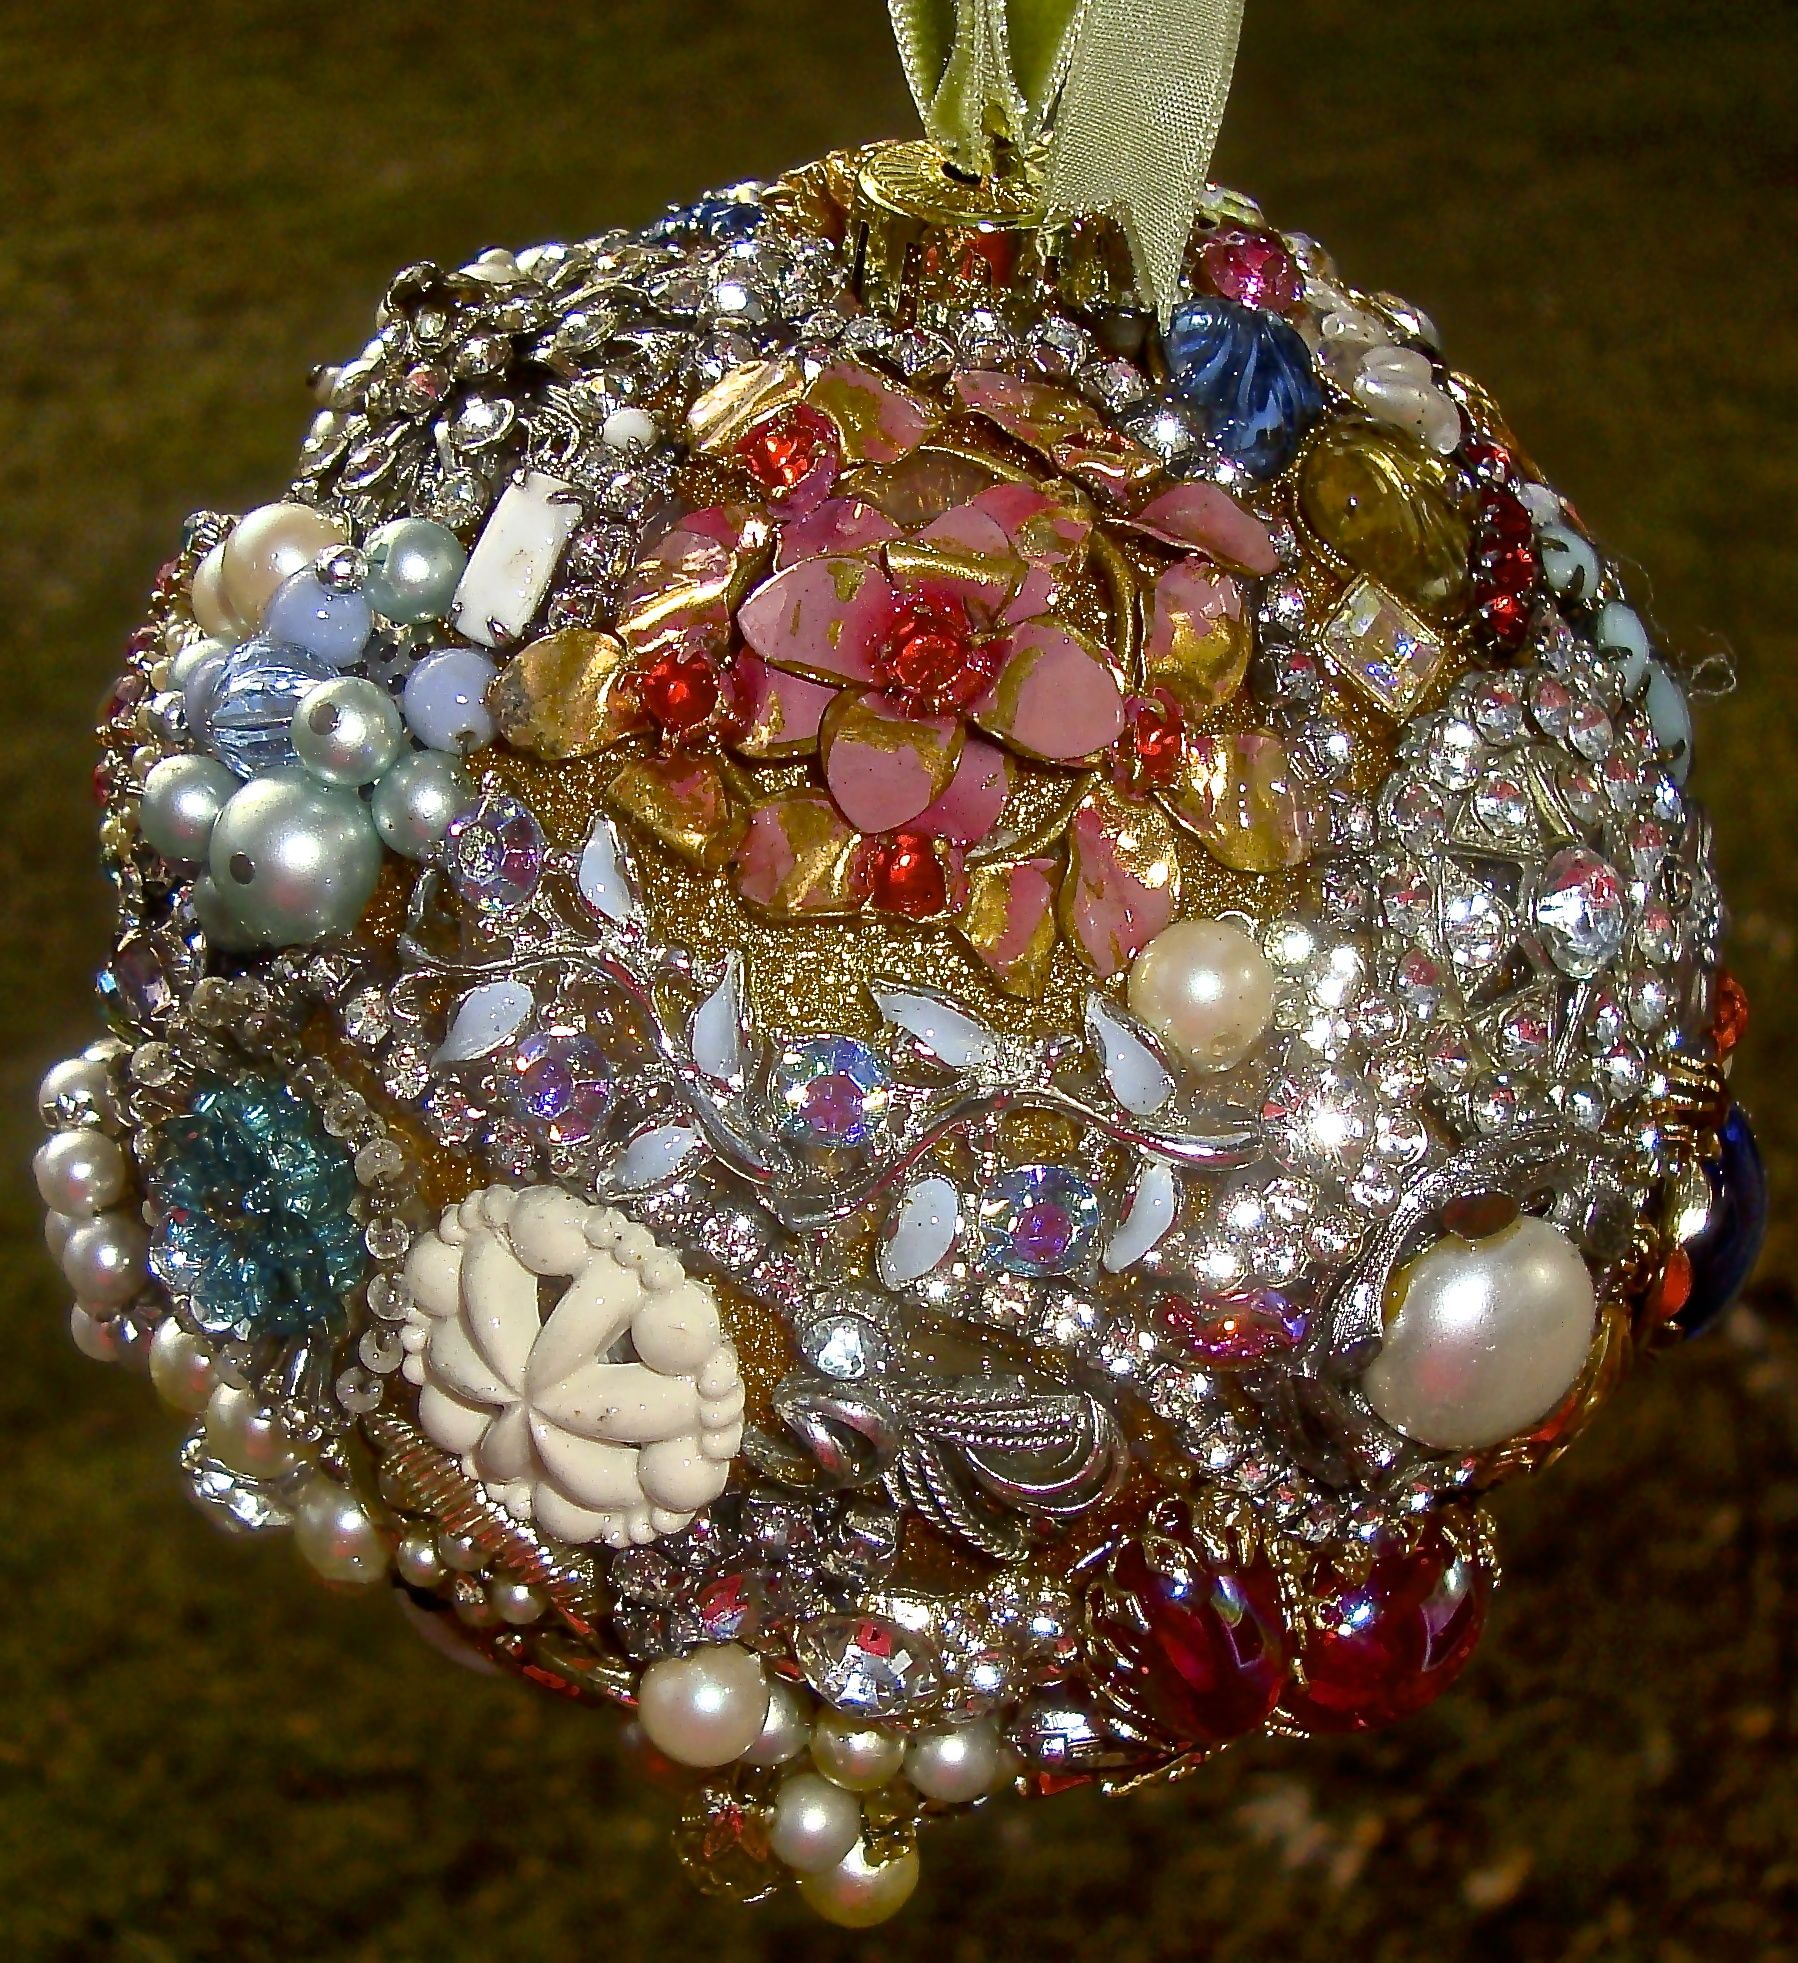 My Second Vintage Jeweled Ball Tree Ornament I Glued Old Broken Jewelry To A Gold Styrofoam Ball Costume Jewelry Crafts Vintage Jewelry Crafts Jewelry Crafts